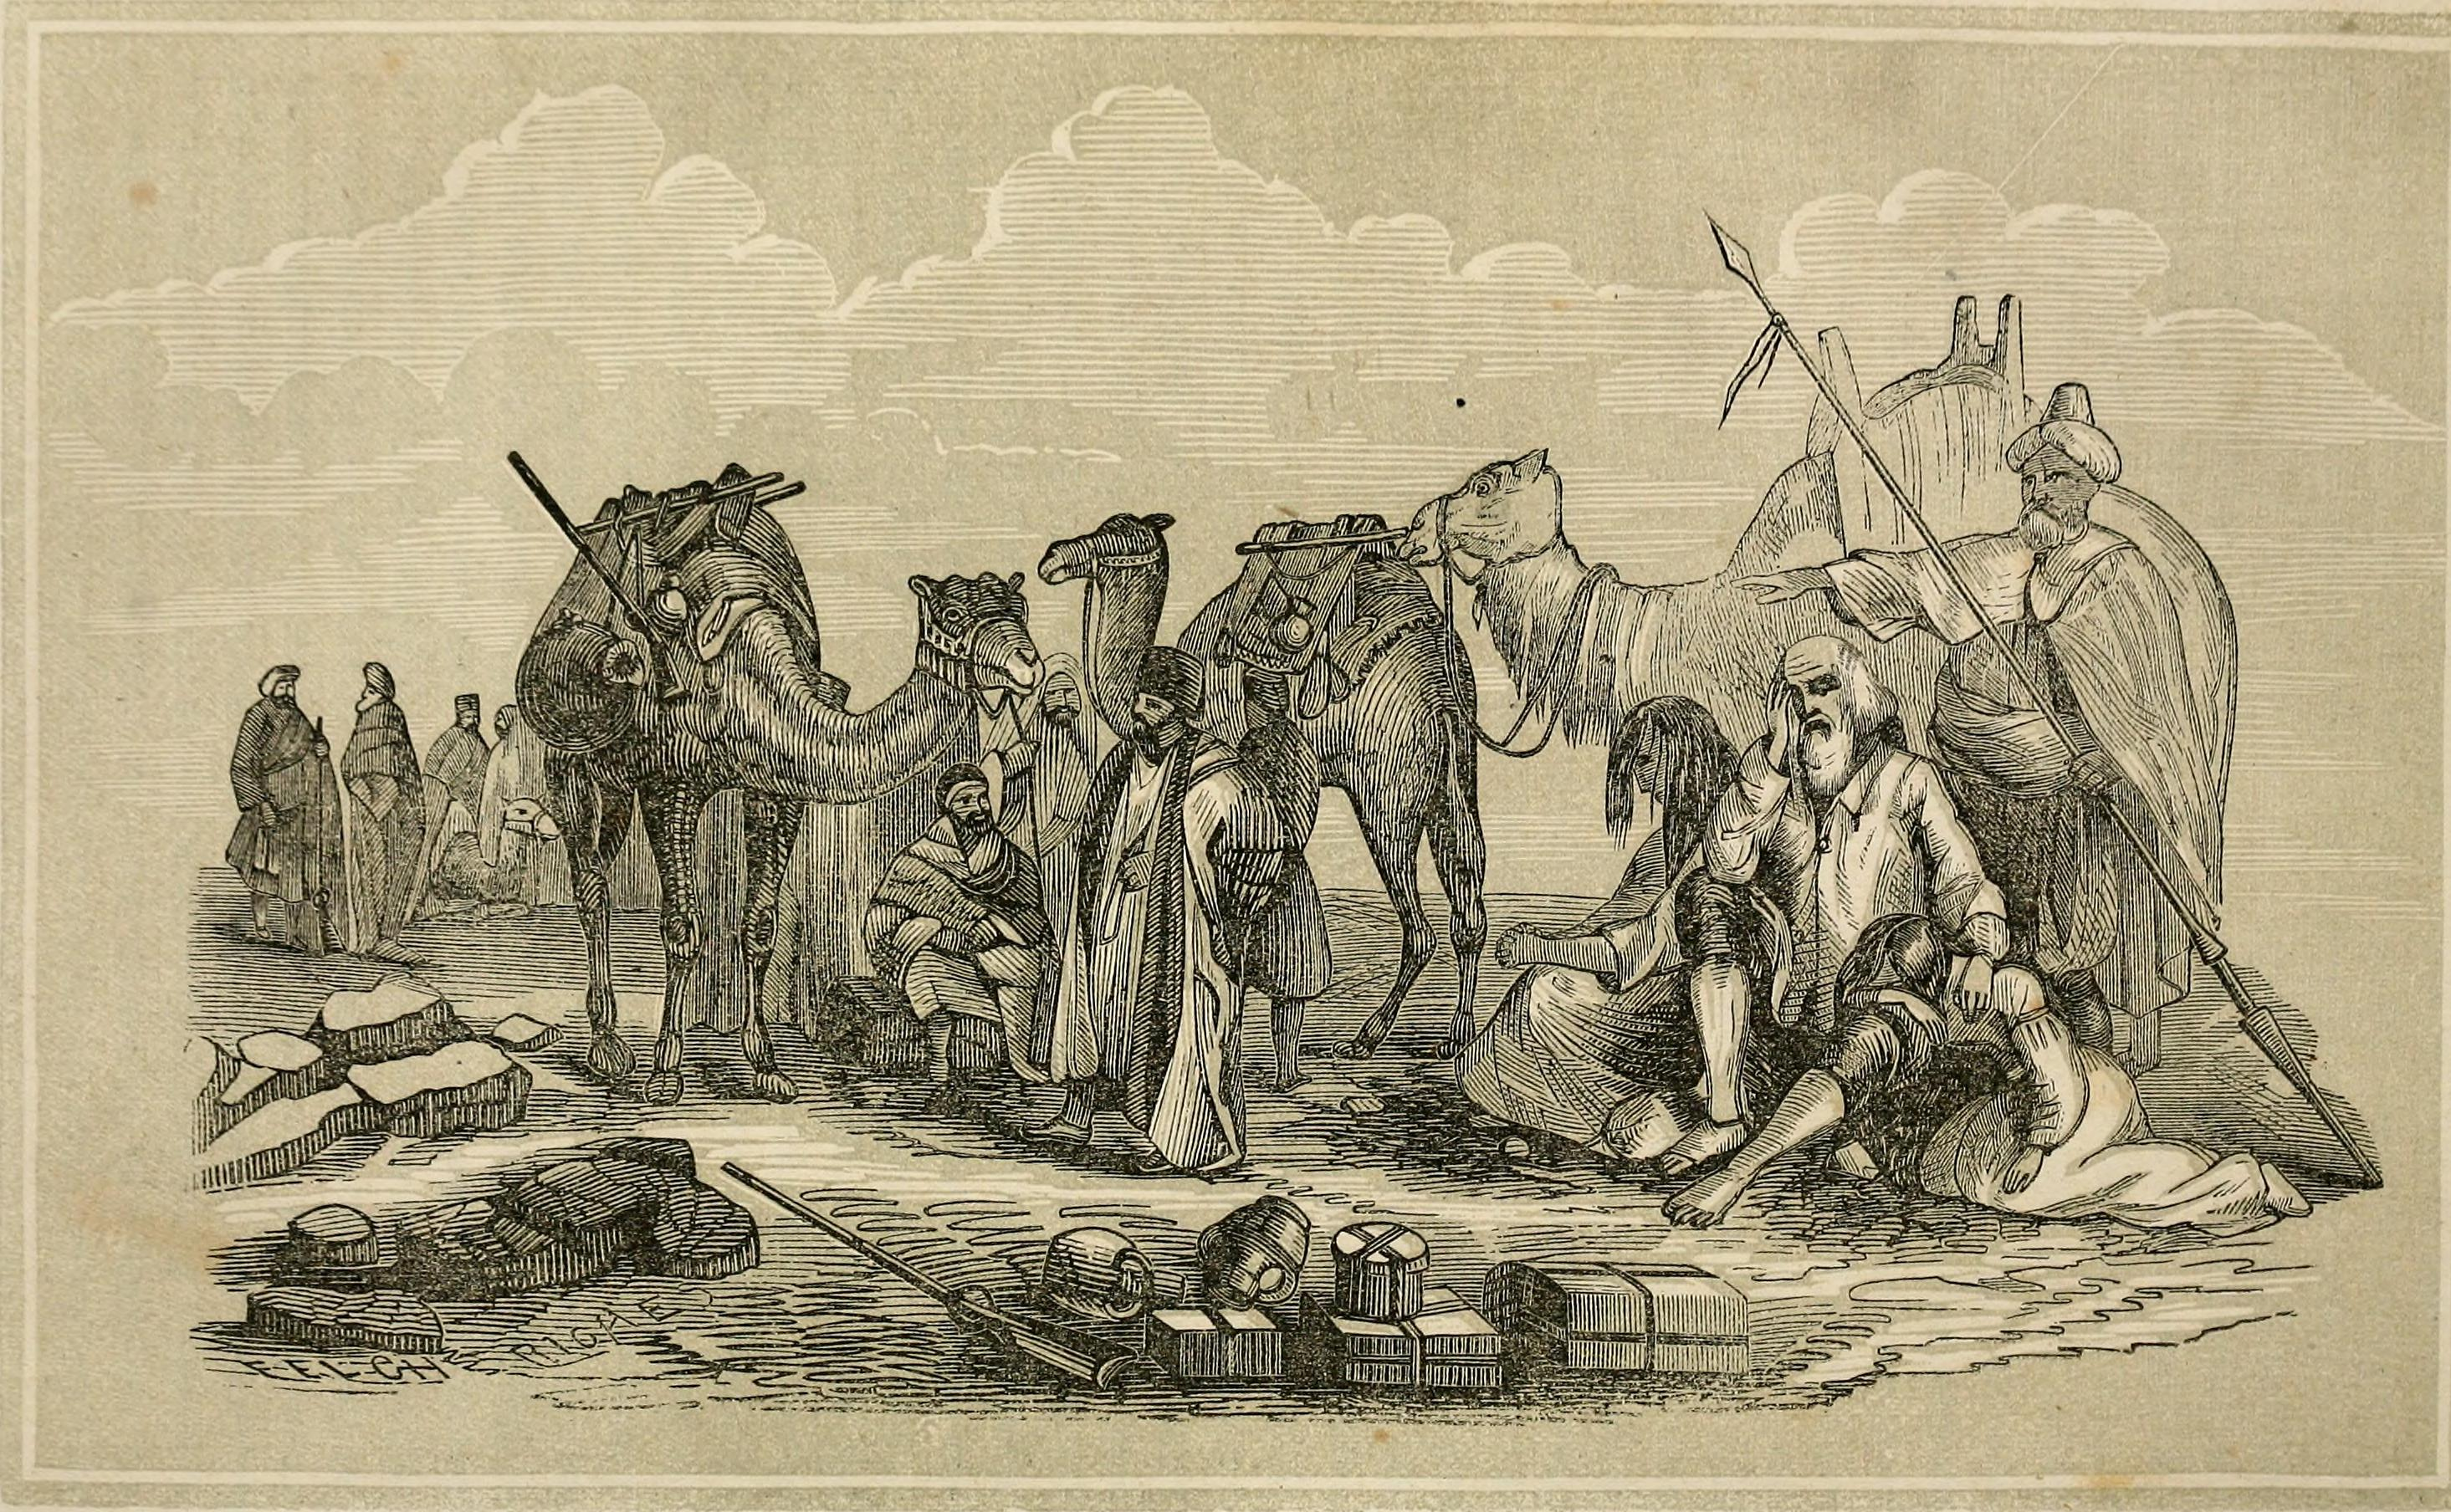 slave trade thesis The african slave trade has affected a very large part of the world this phenomenon has been described in many different ways, such as slave trade, forced migration and genocide the problem with these descriptions is that none of them accurately describe the african slave trade or it's.